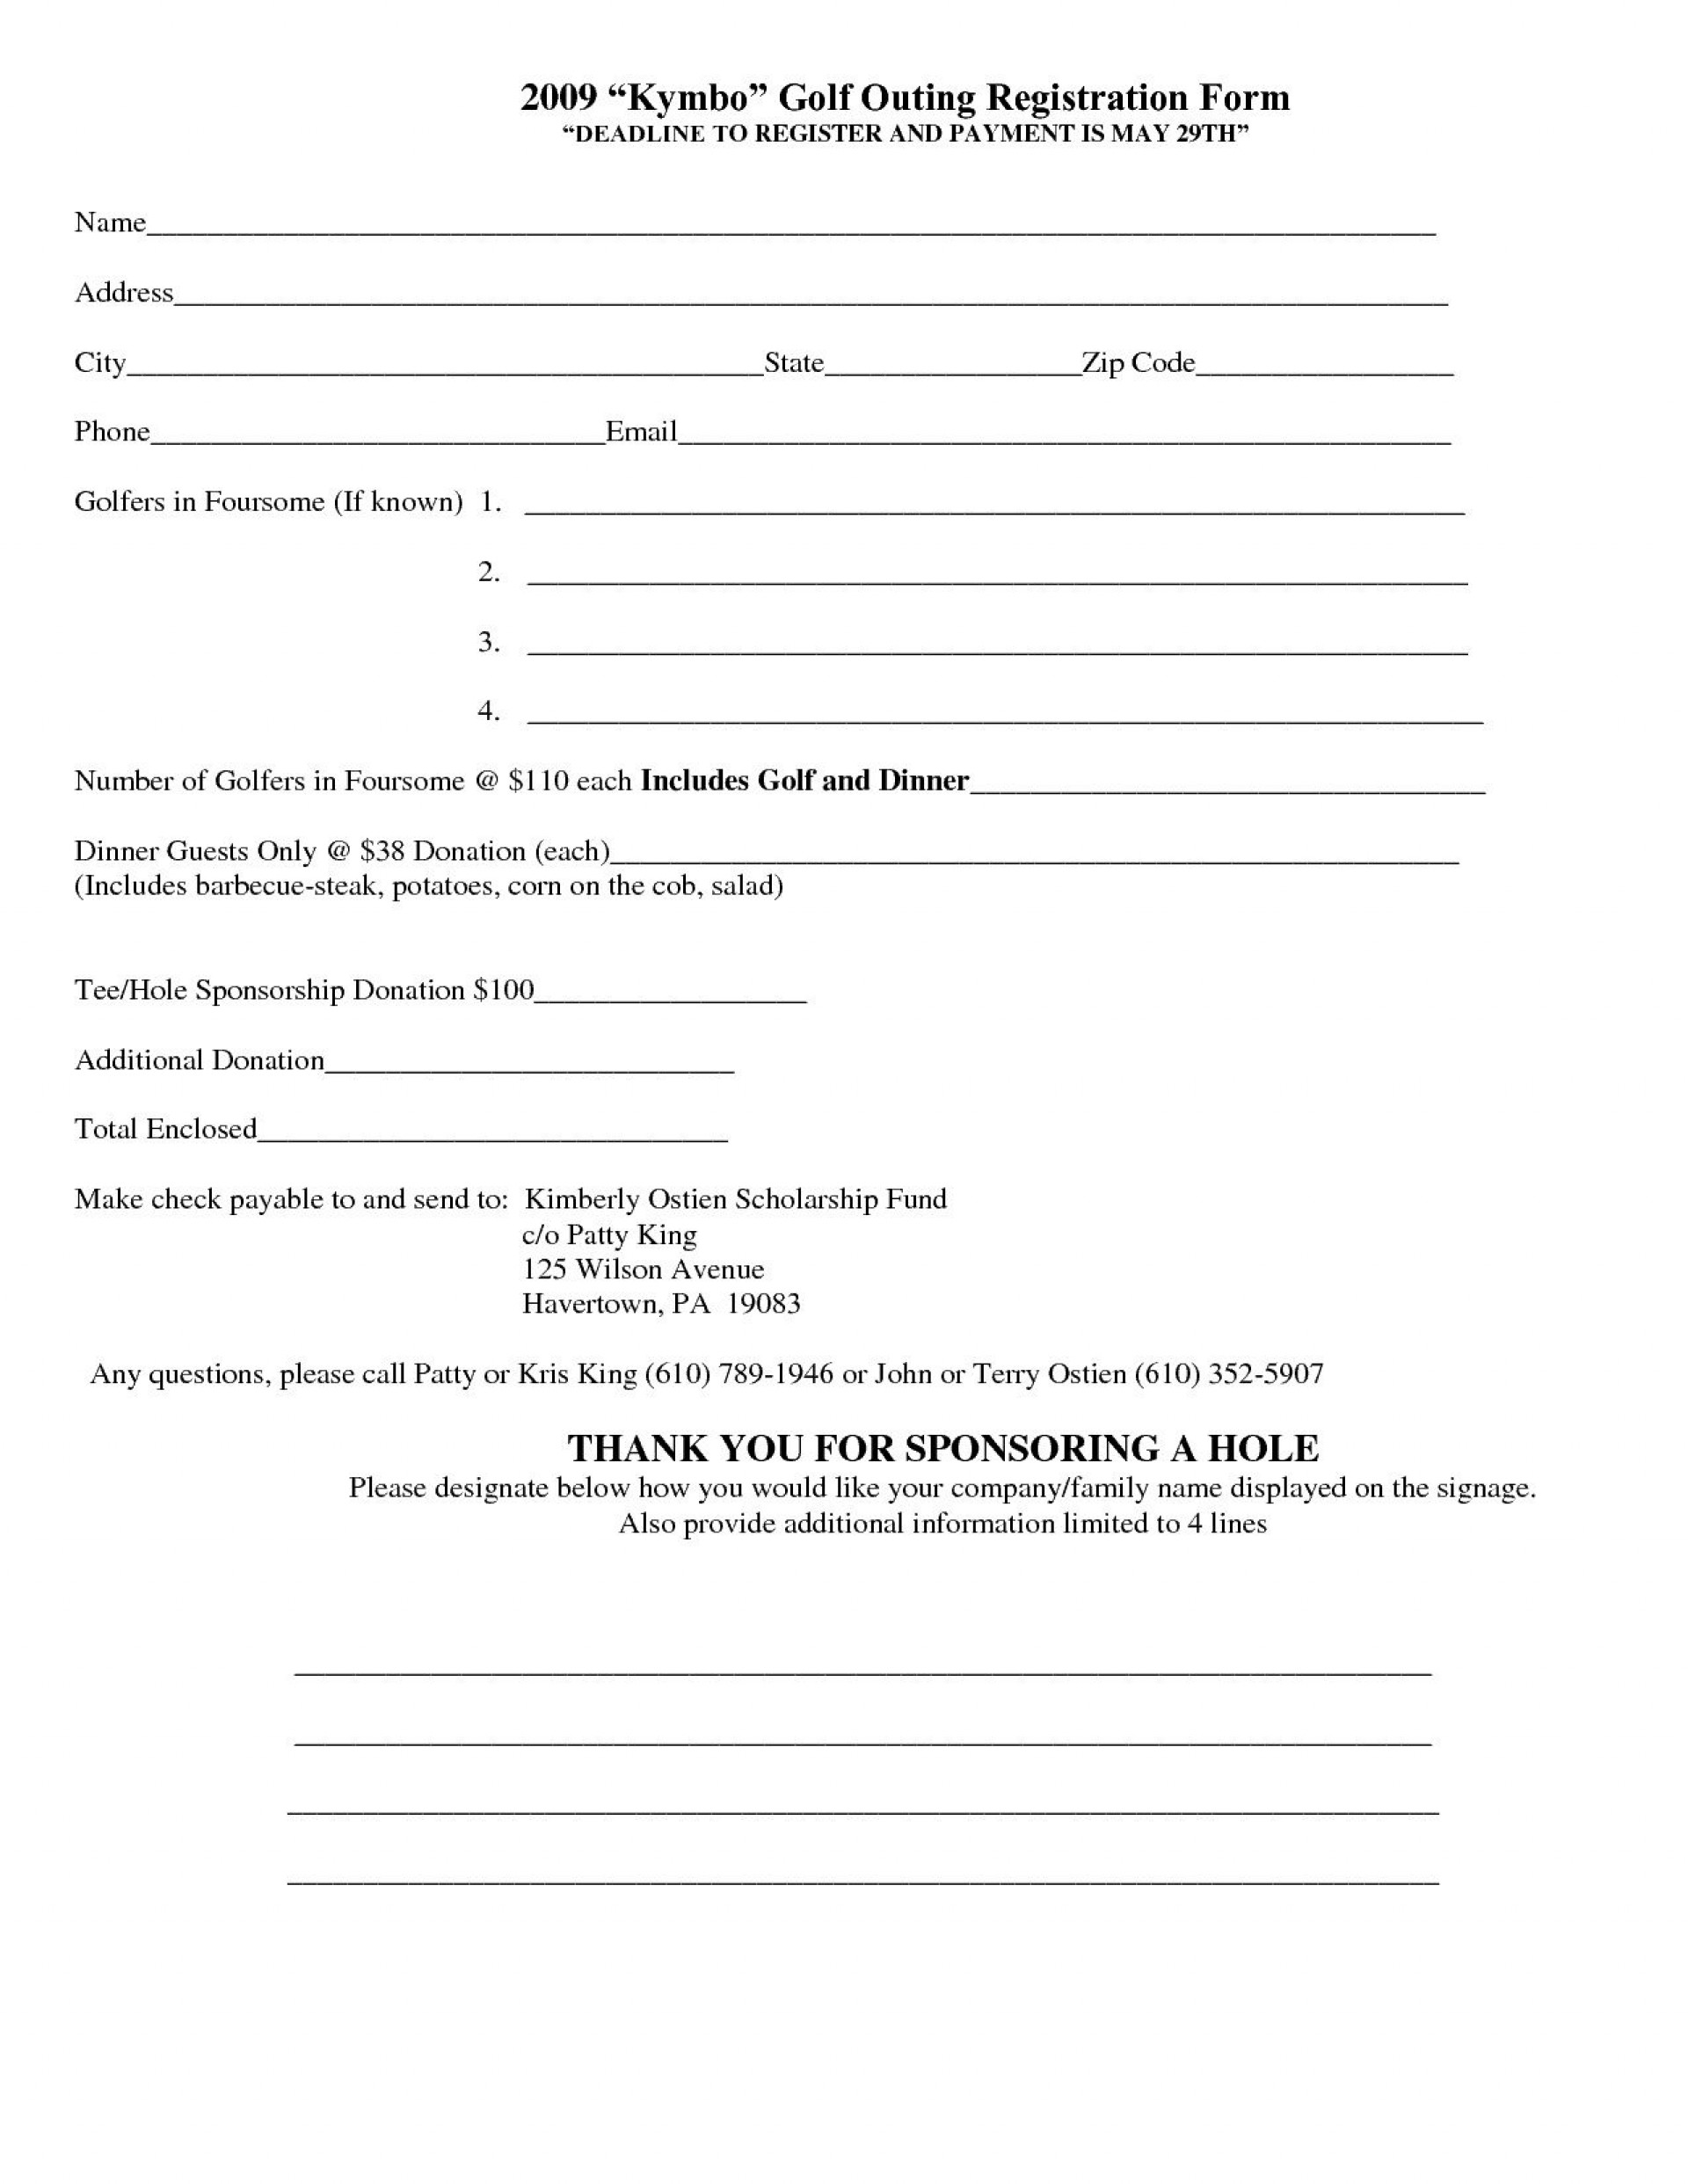 008 Awful Registration Form Template Word Idea  Conference Free1920